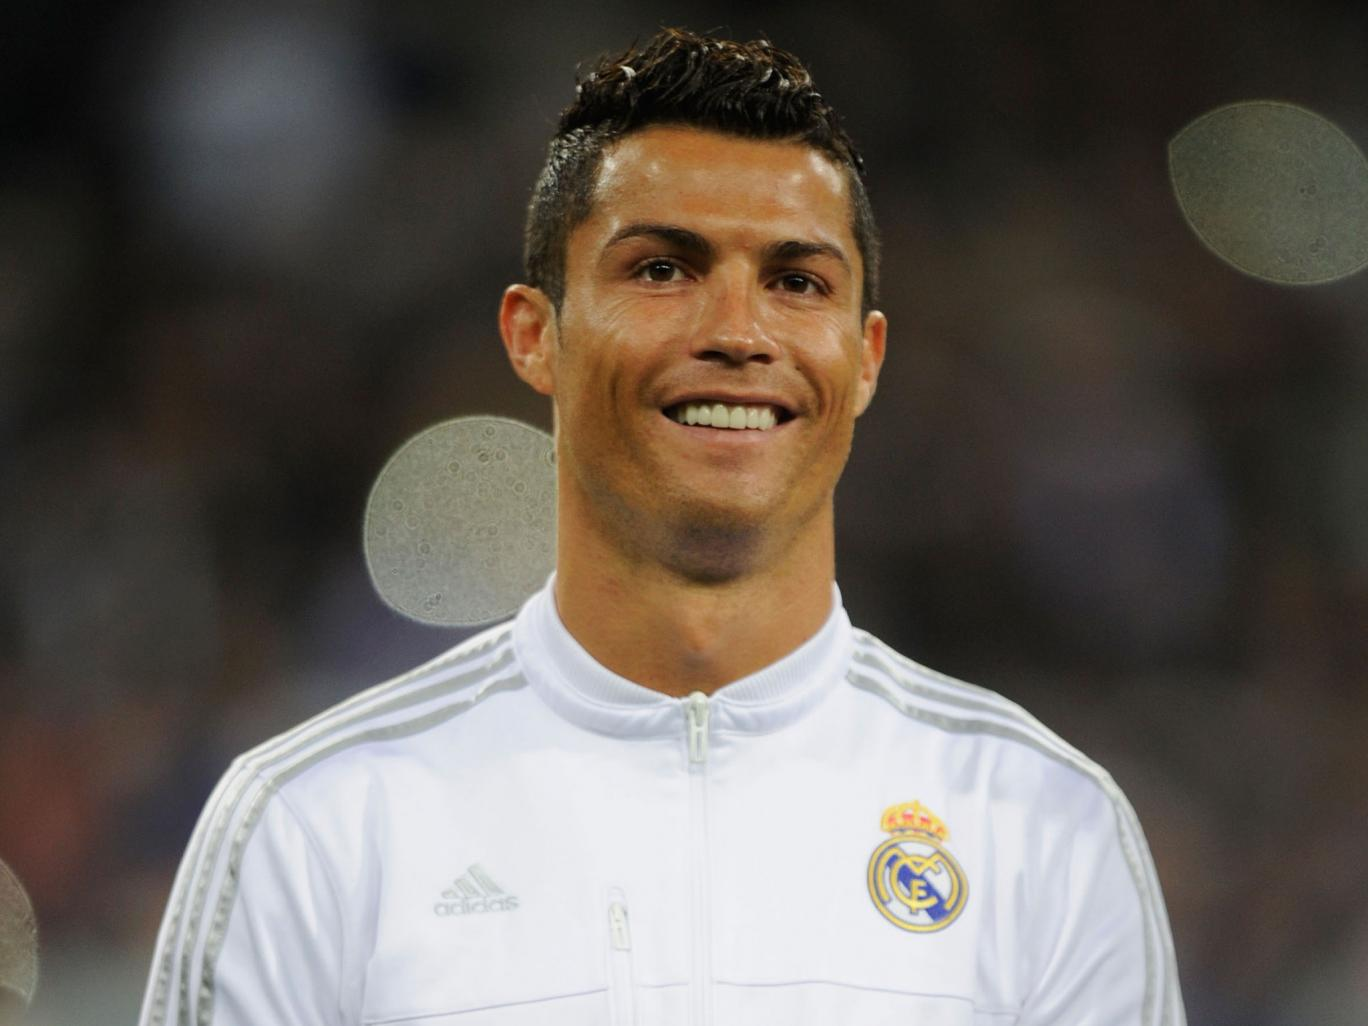 Cristiano Ronaldo has been shortlisted for the Ballon D'or